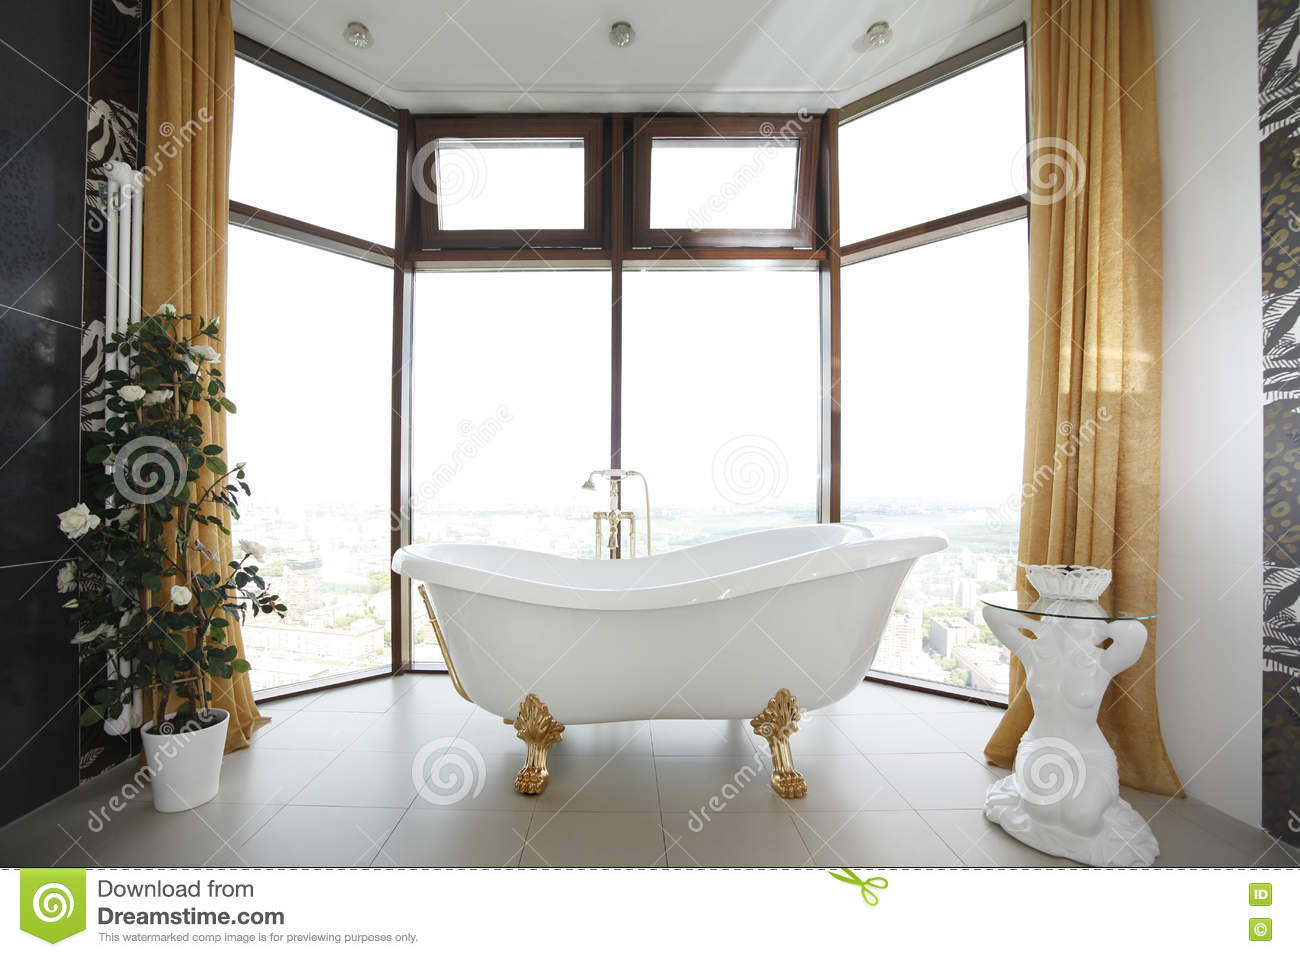 Classic bathroom design stock photo. Image of color, domestic - 72937700